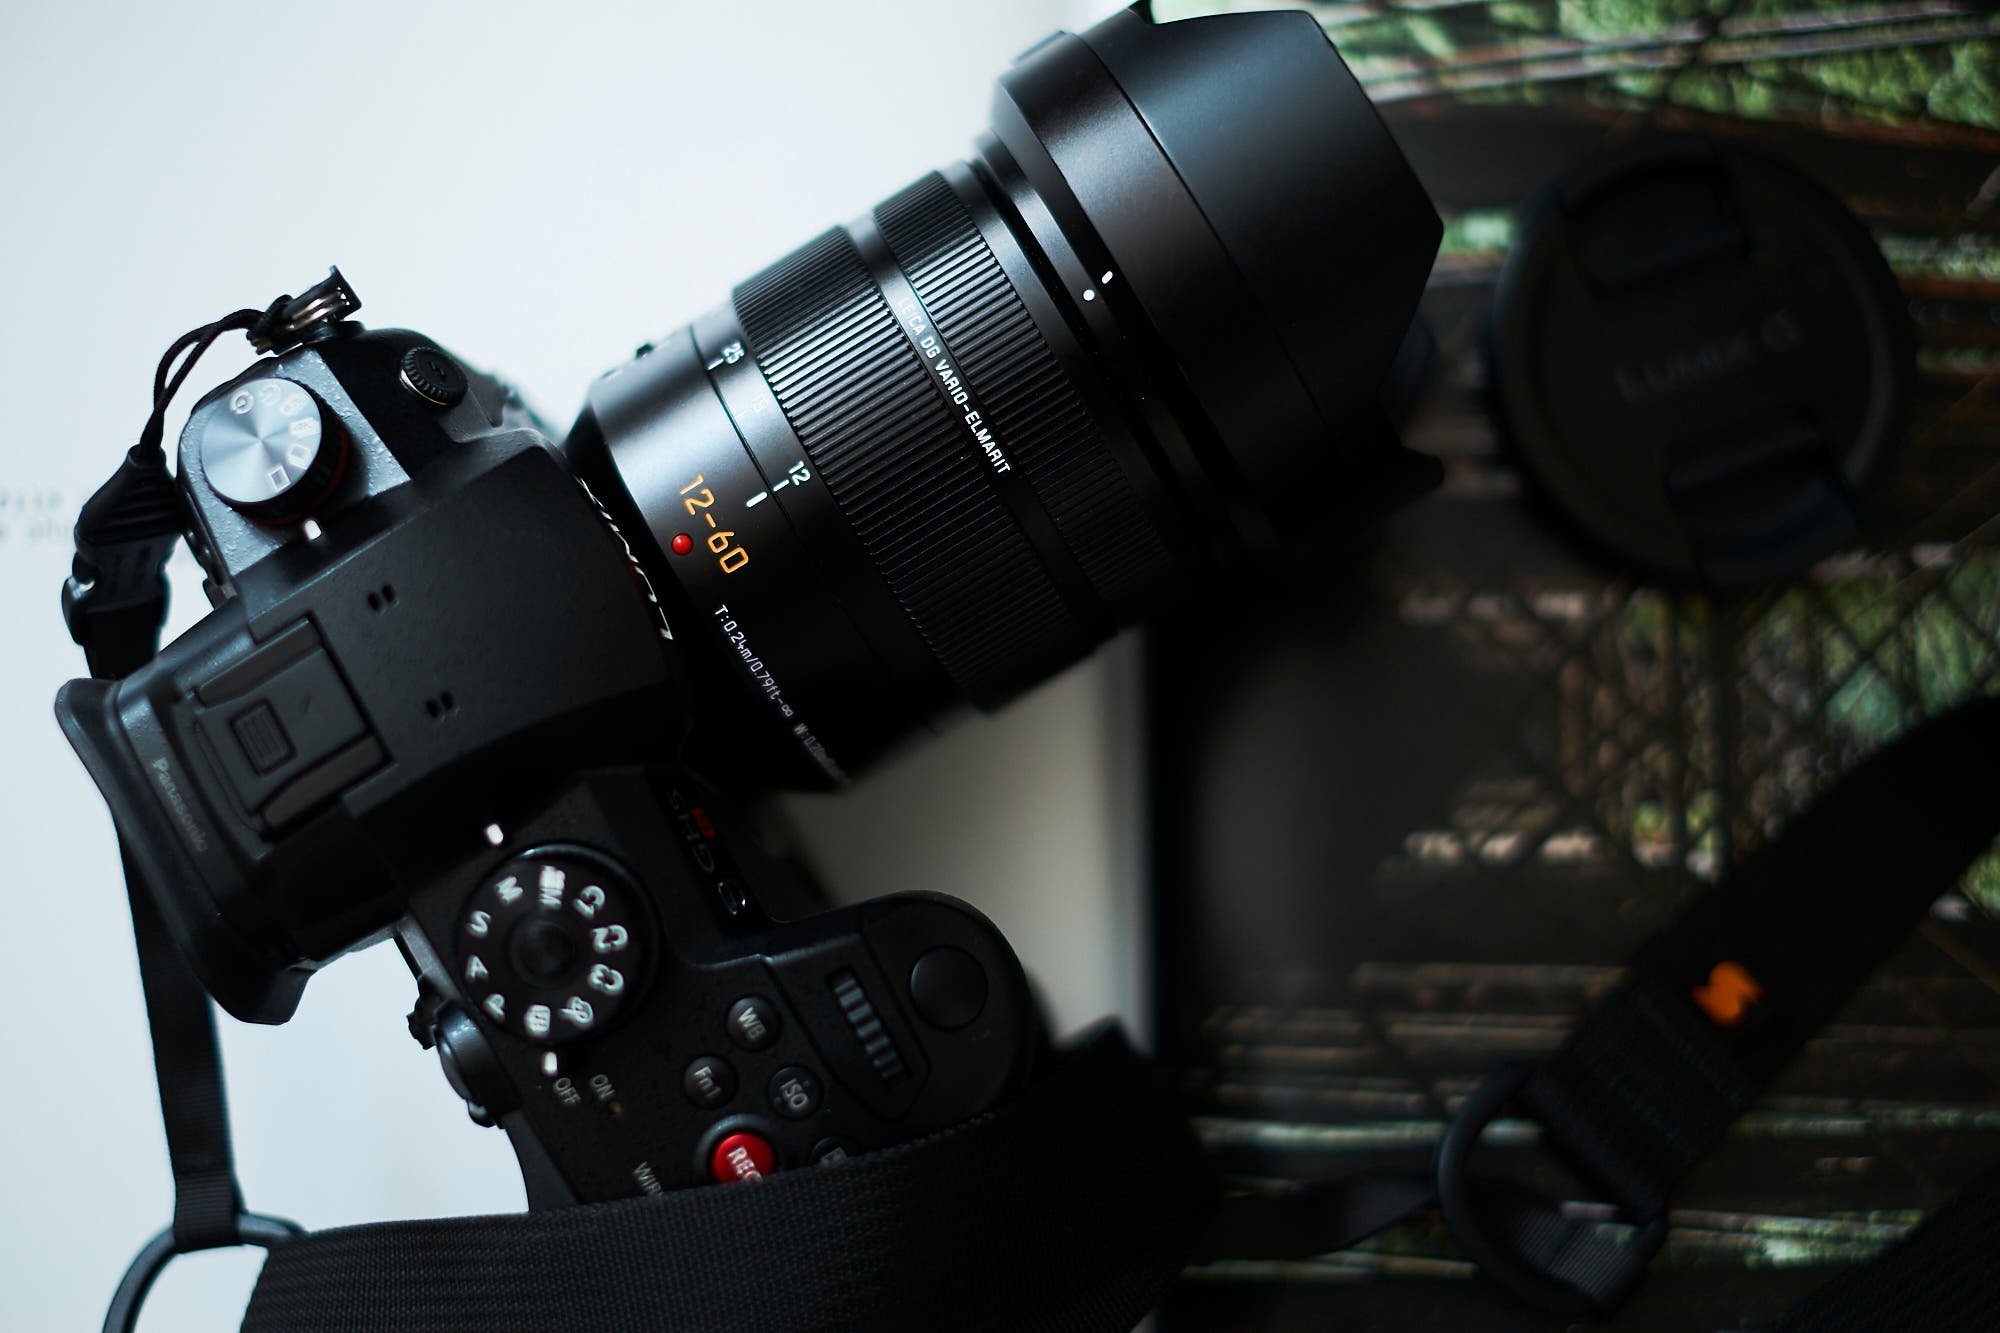 Review: Panasonic 12-60mm F2.8-4 Power OIS (Micro Four Thirds)